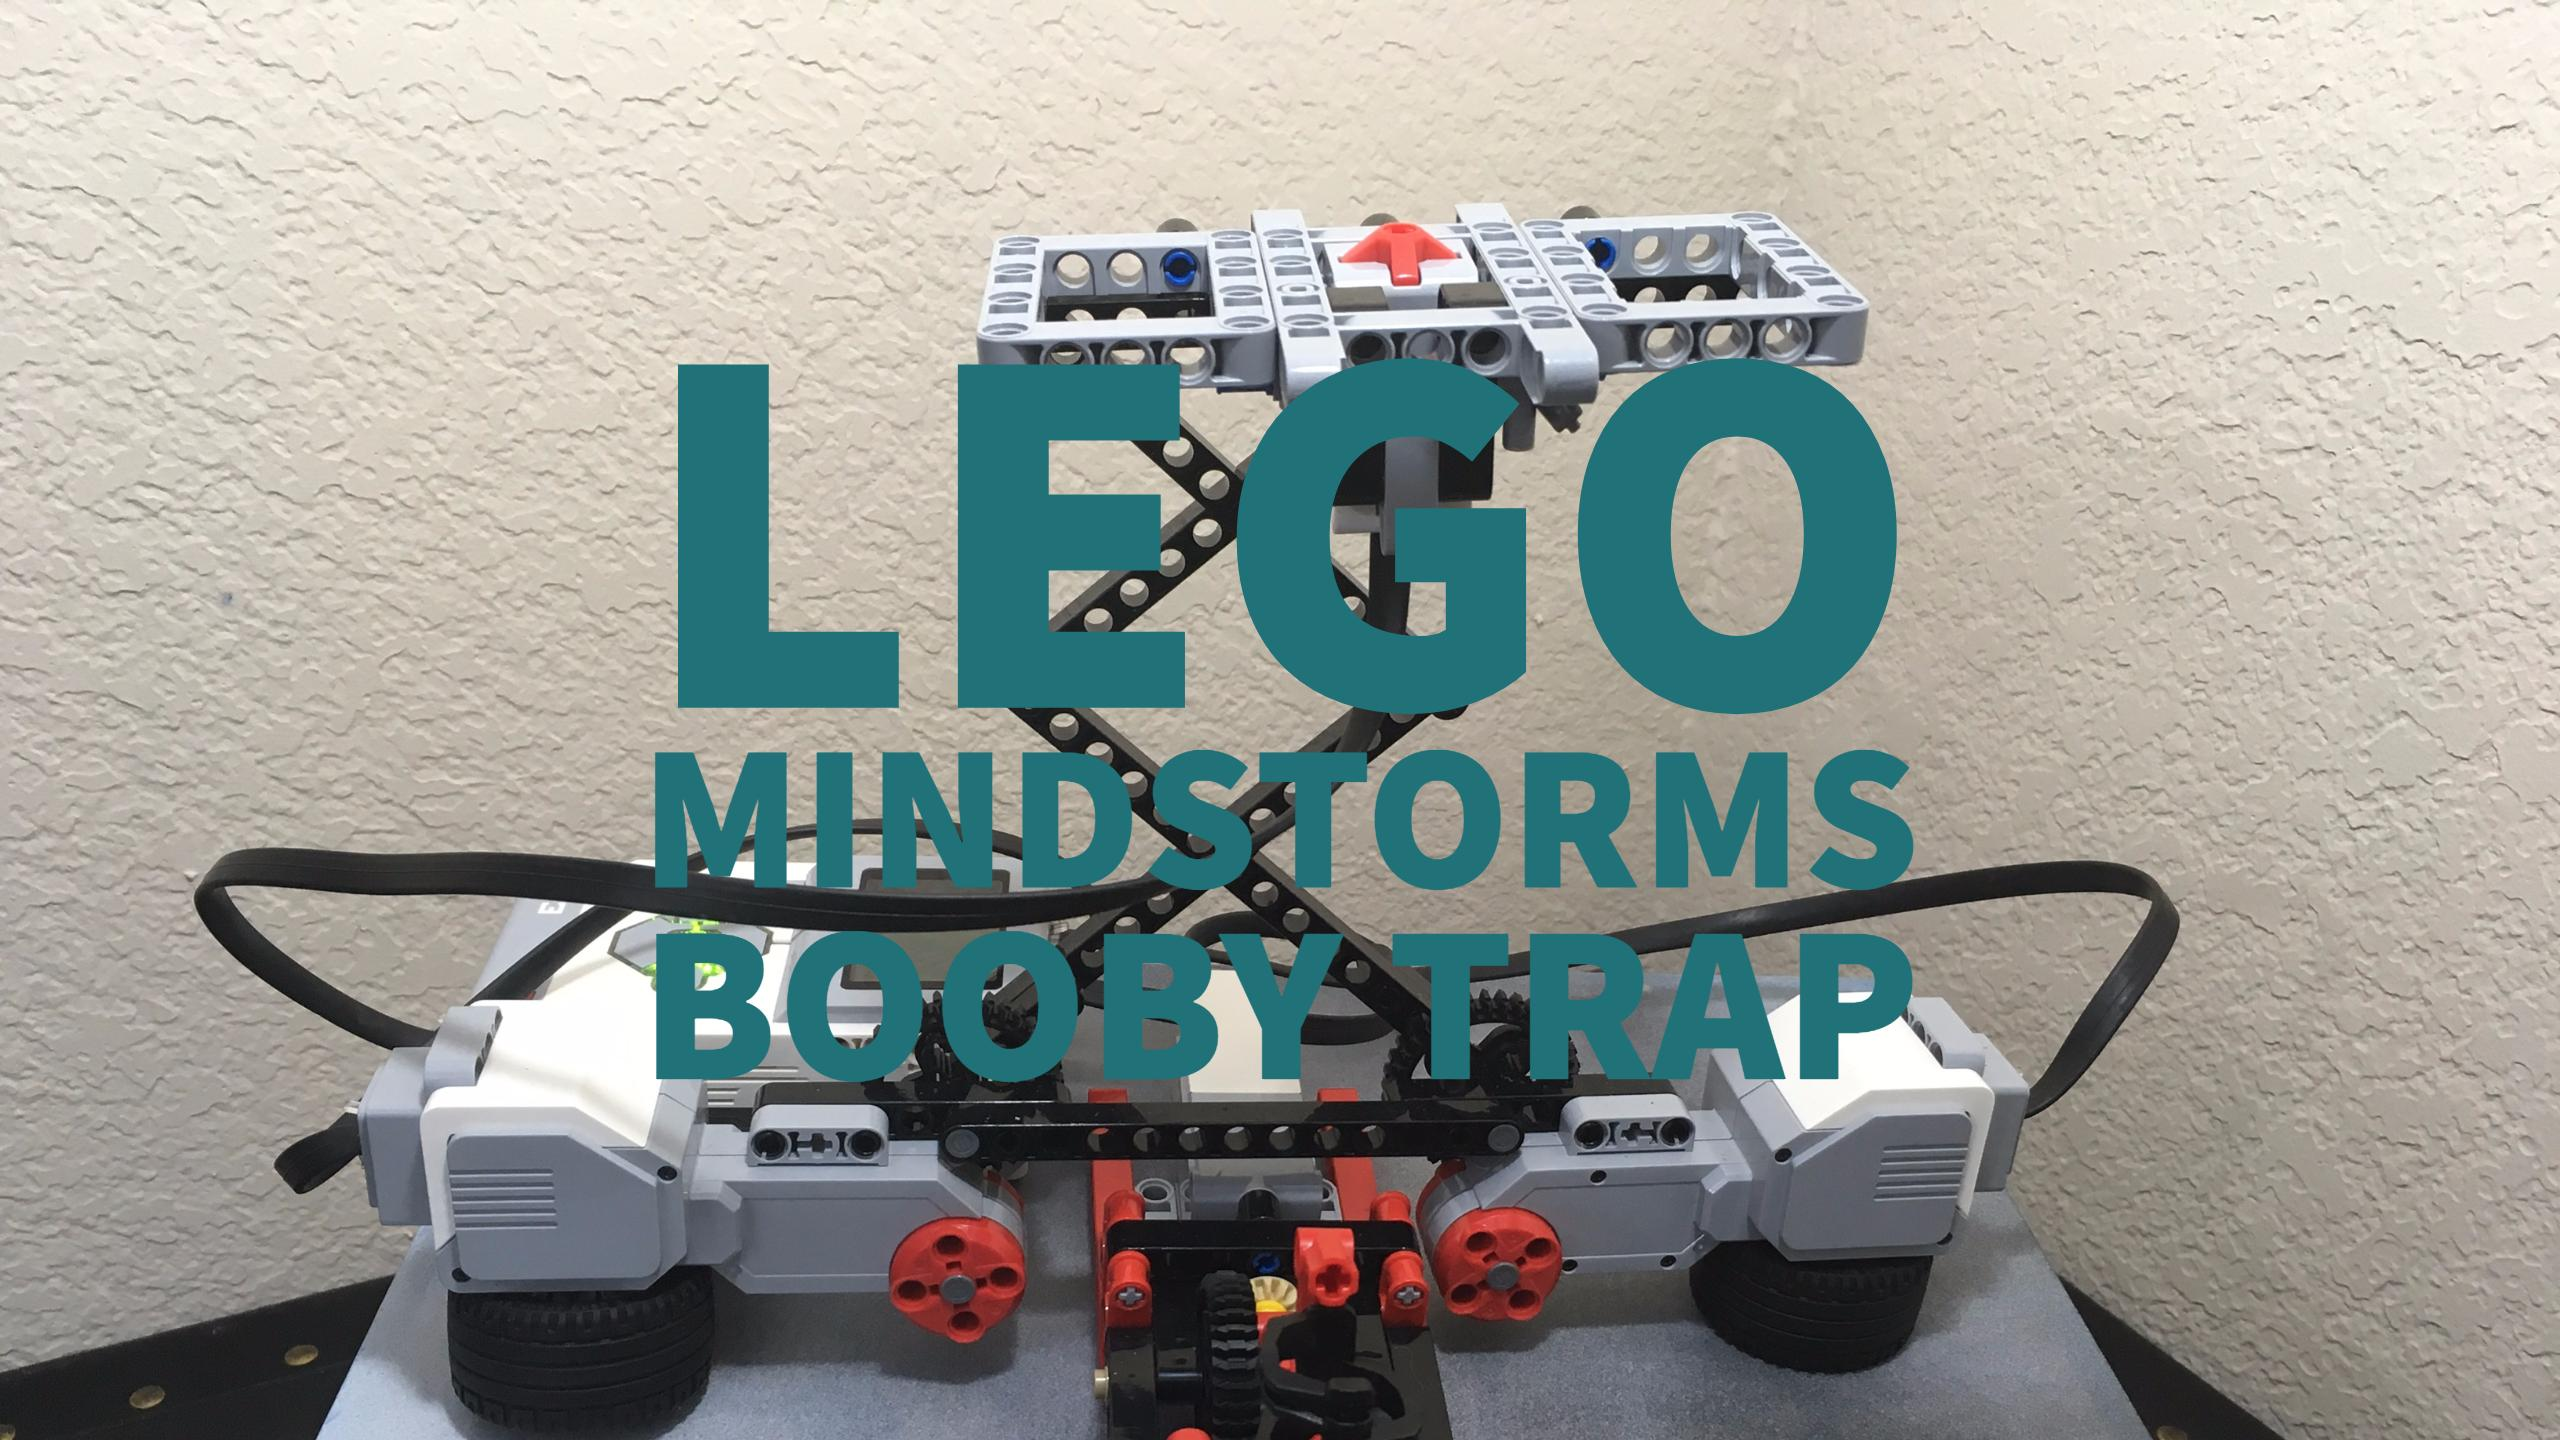 Lego Mindstorms Booby Trap Teach Kids Engineering